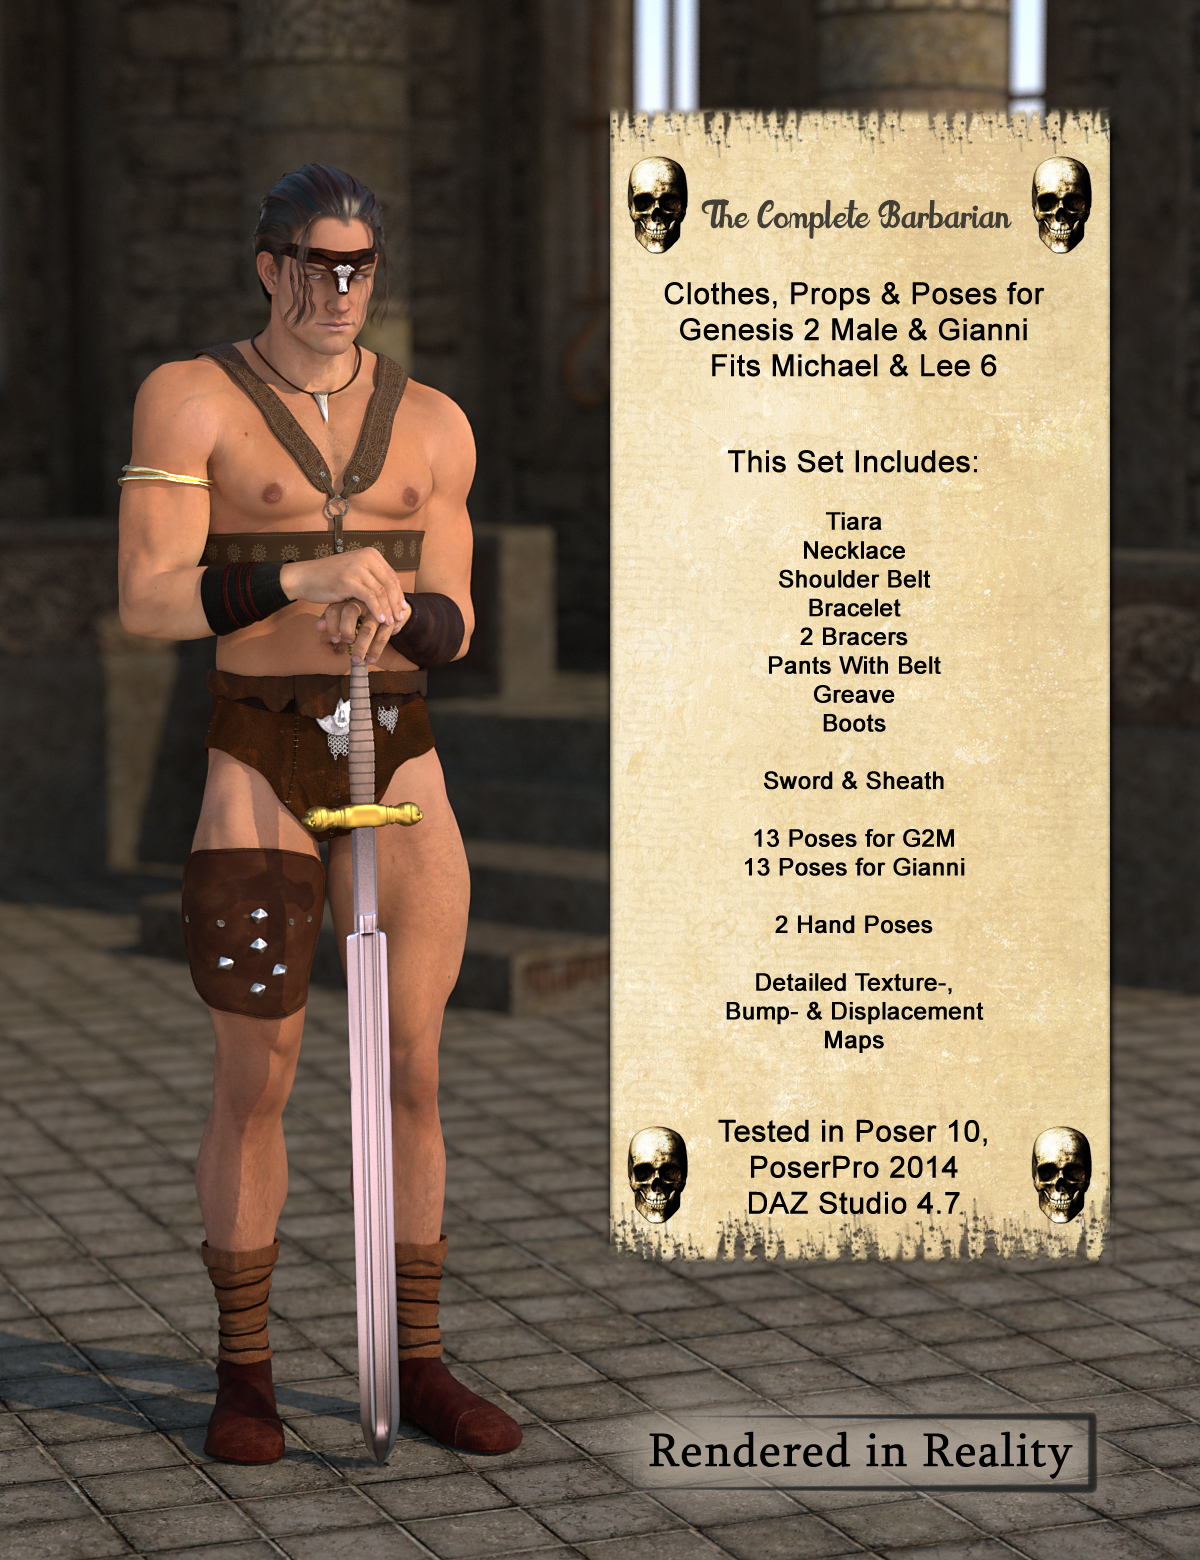 The Complete Barbarian